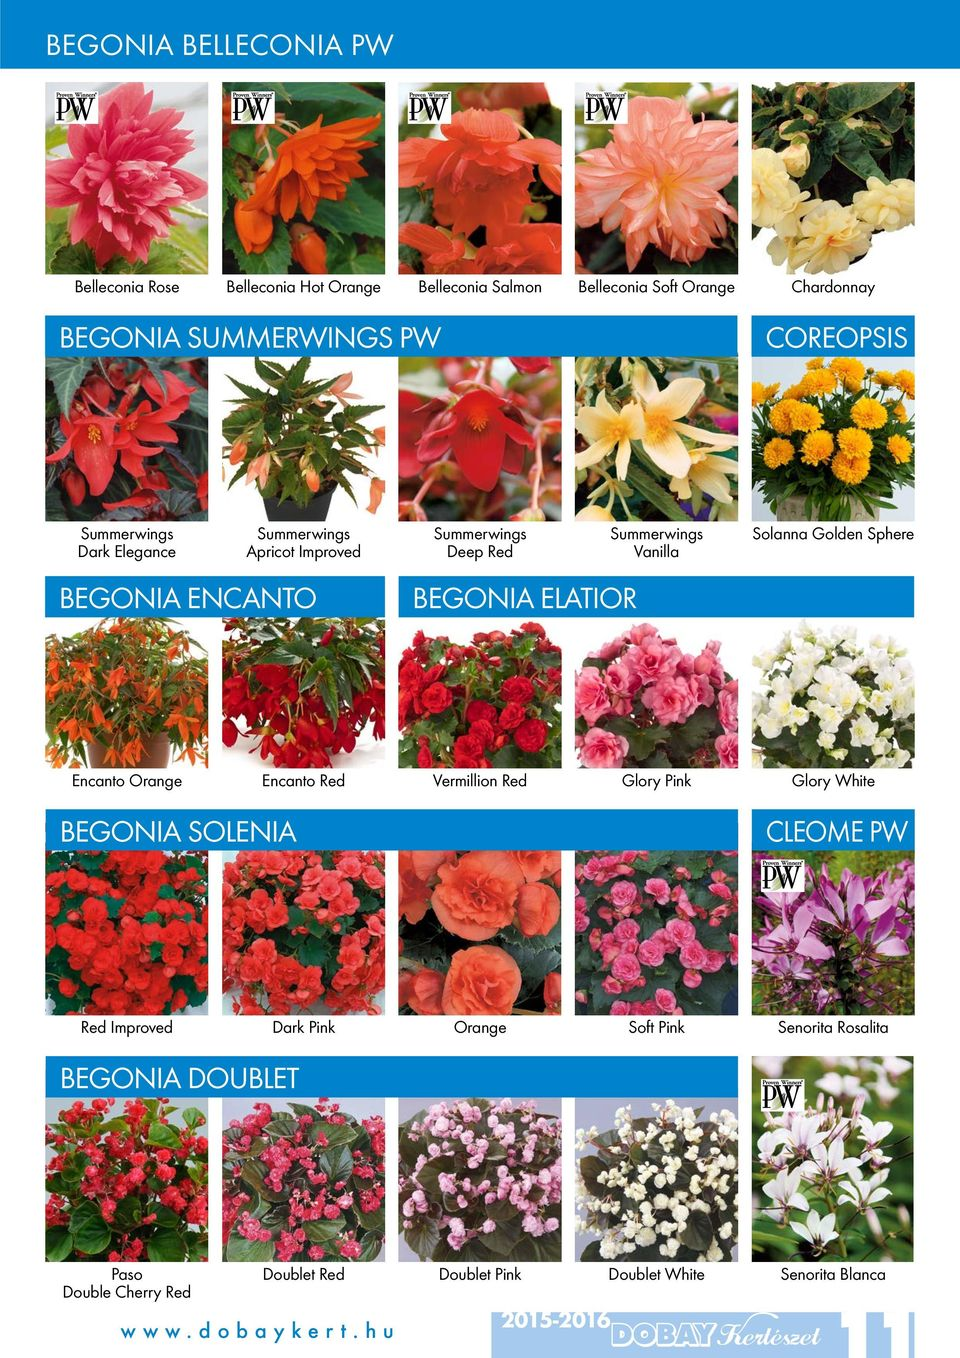 Vanilla Solanna Golden Sphere Encanto Orange Encanto Red Vermillion Red Glory Pink Glory White BEGONIA SOLENIA CLEOME PW Red Improved